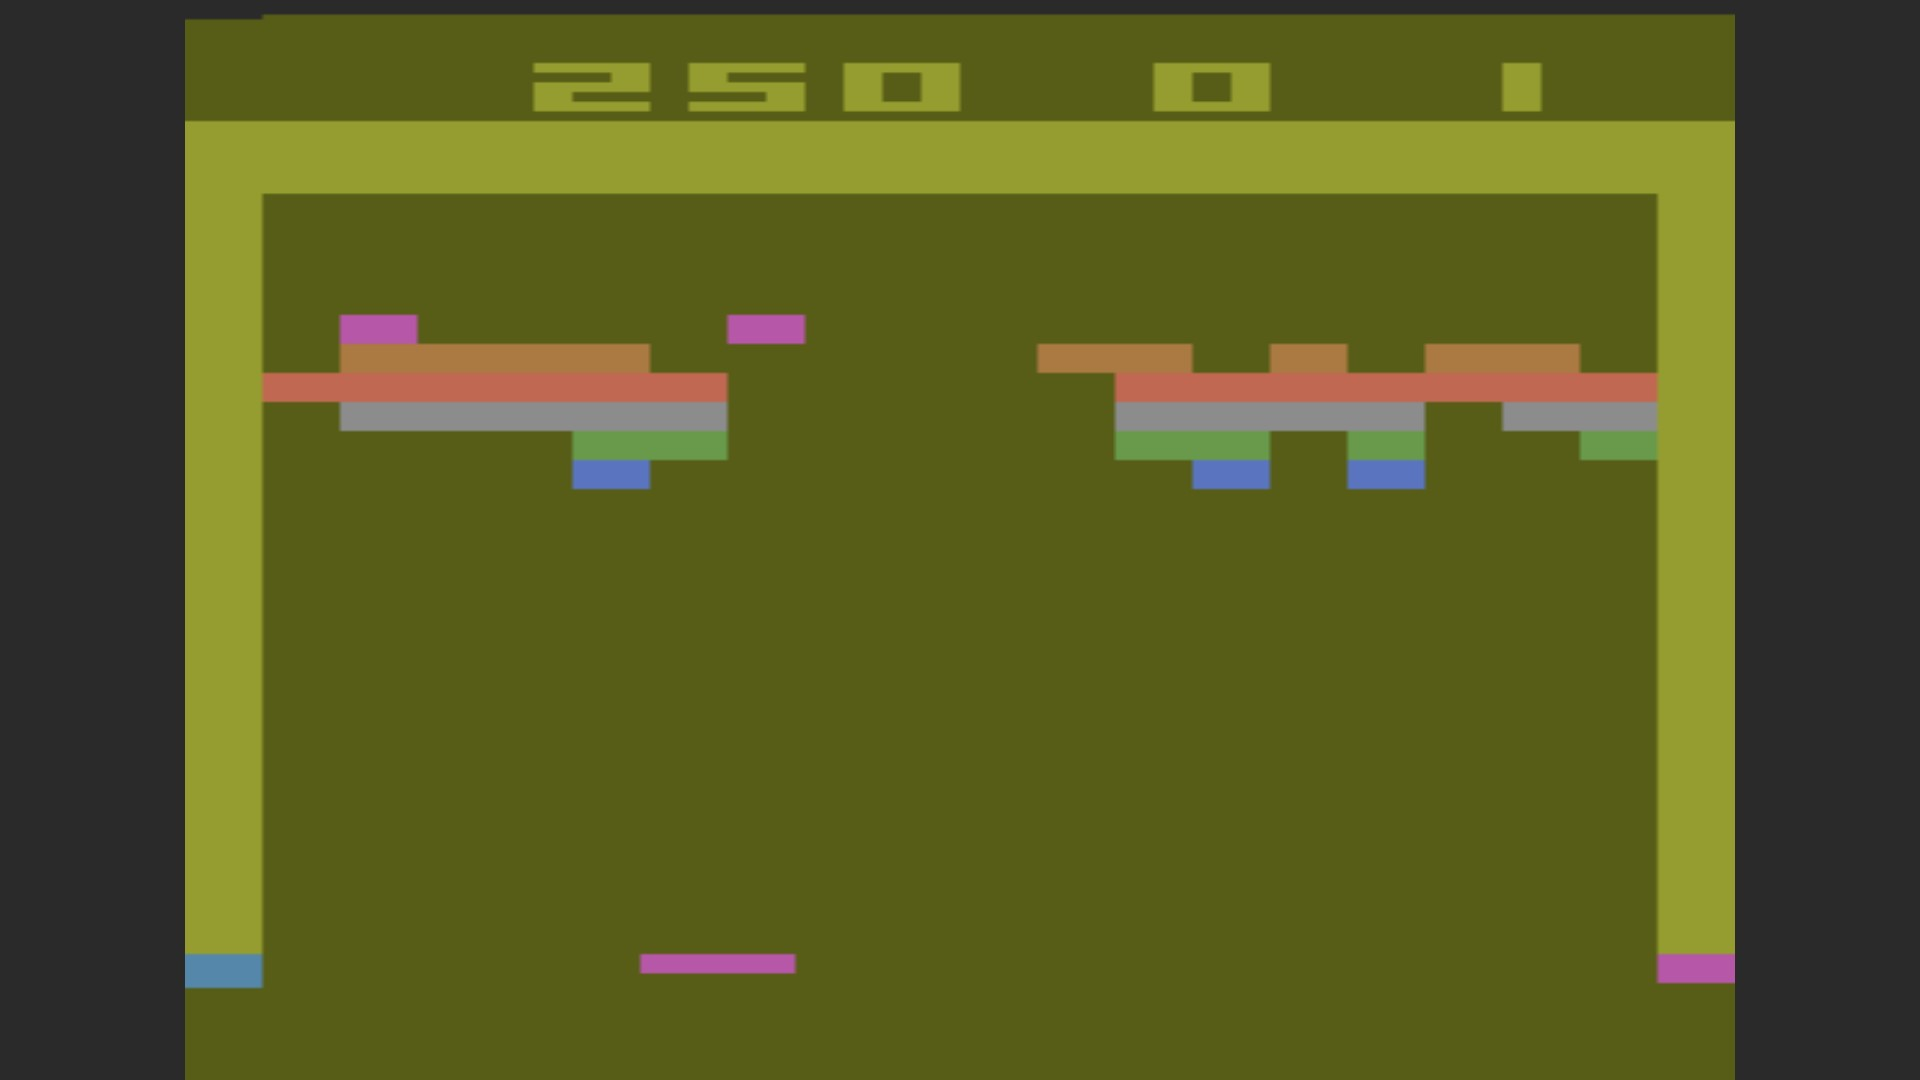 AkinNahtanoj: Breakout: Game 3 (Atari 2600 Emulated Expert/A Mode) 250 points on 2020-10-13 15:48:38